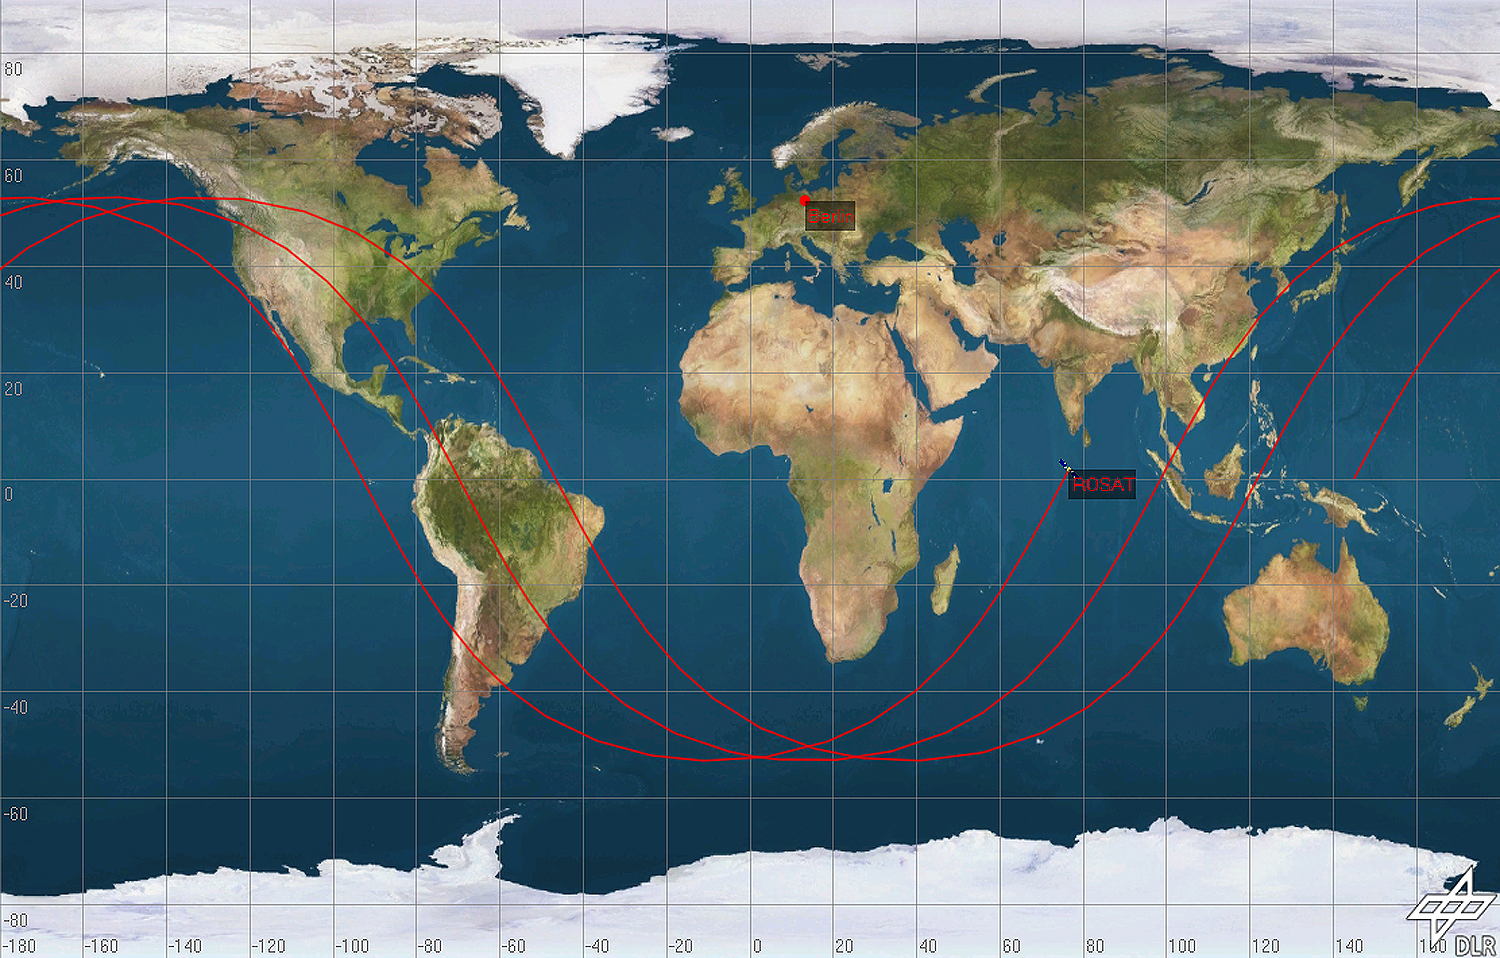 Sample Representation Based on Three Consecutive Orbits of ROSAT